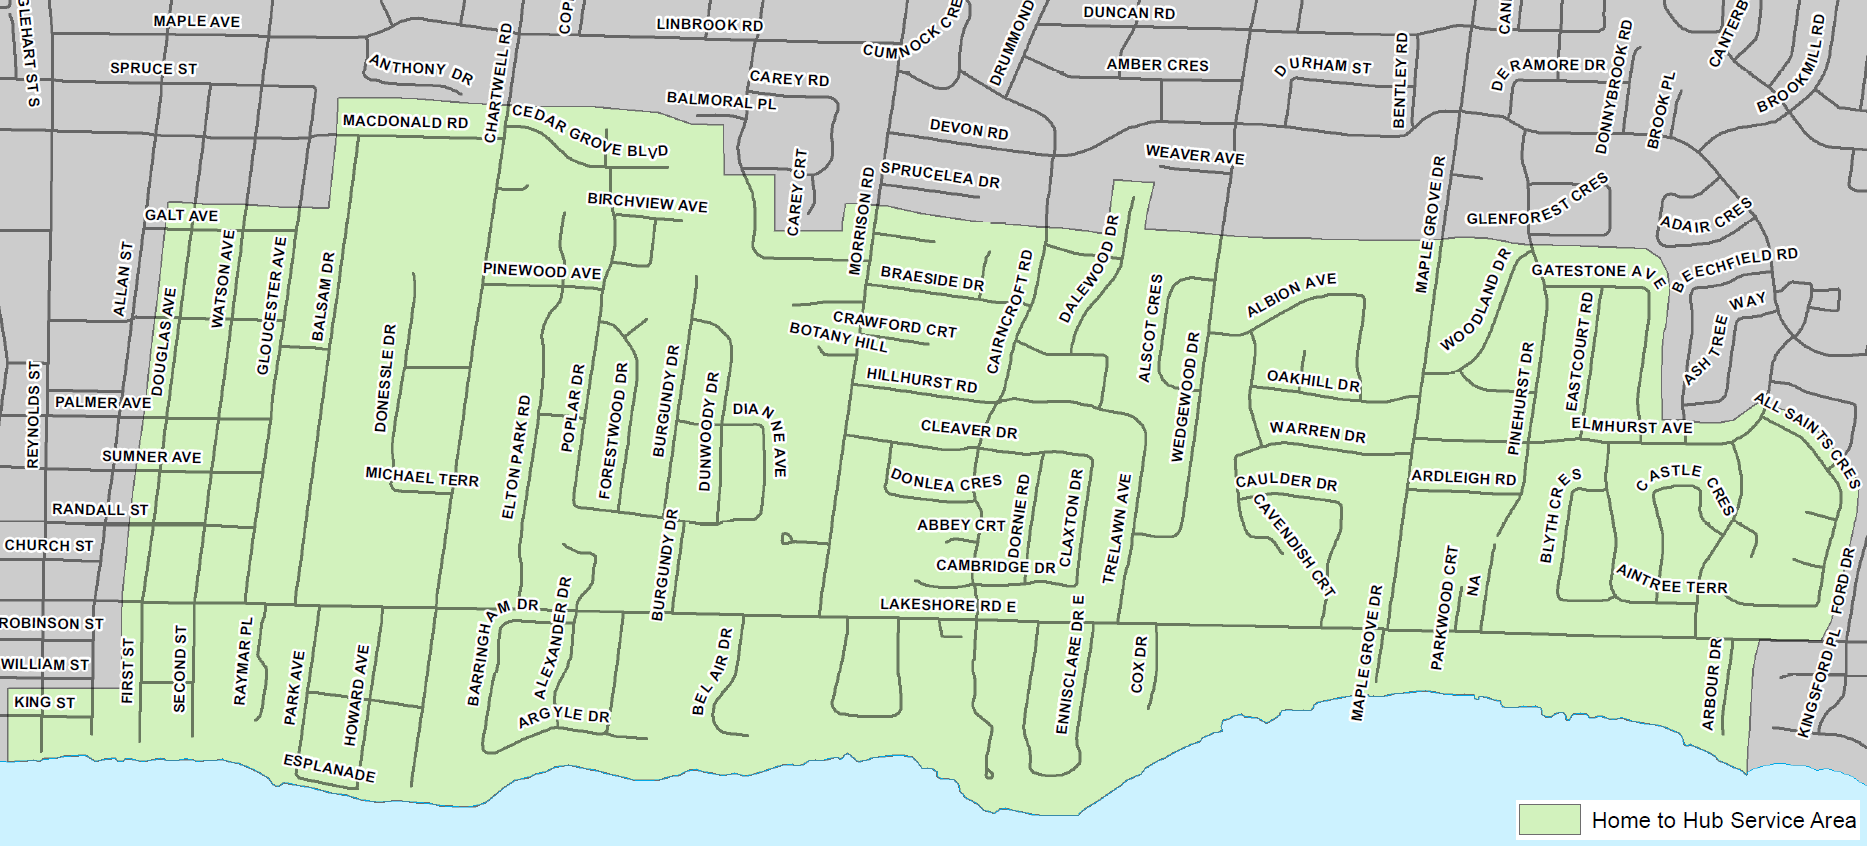 Southeast Oakville service area map